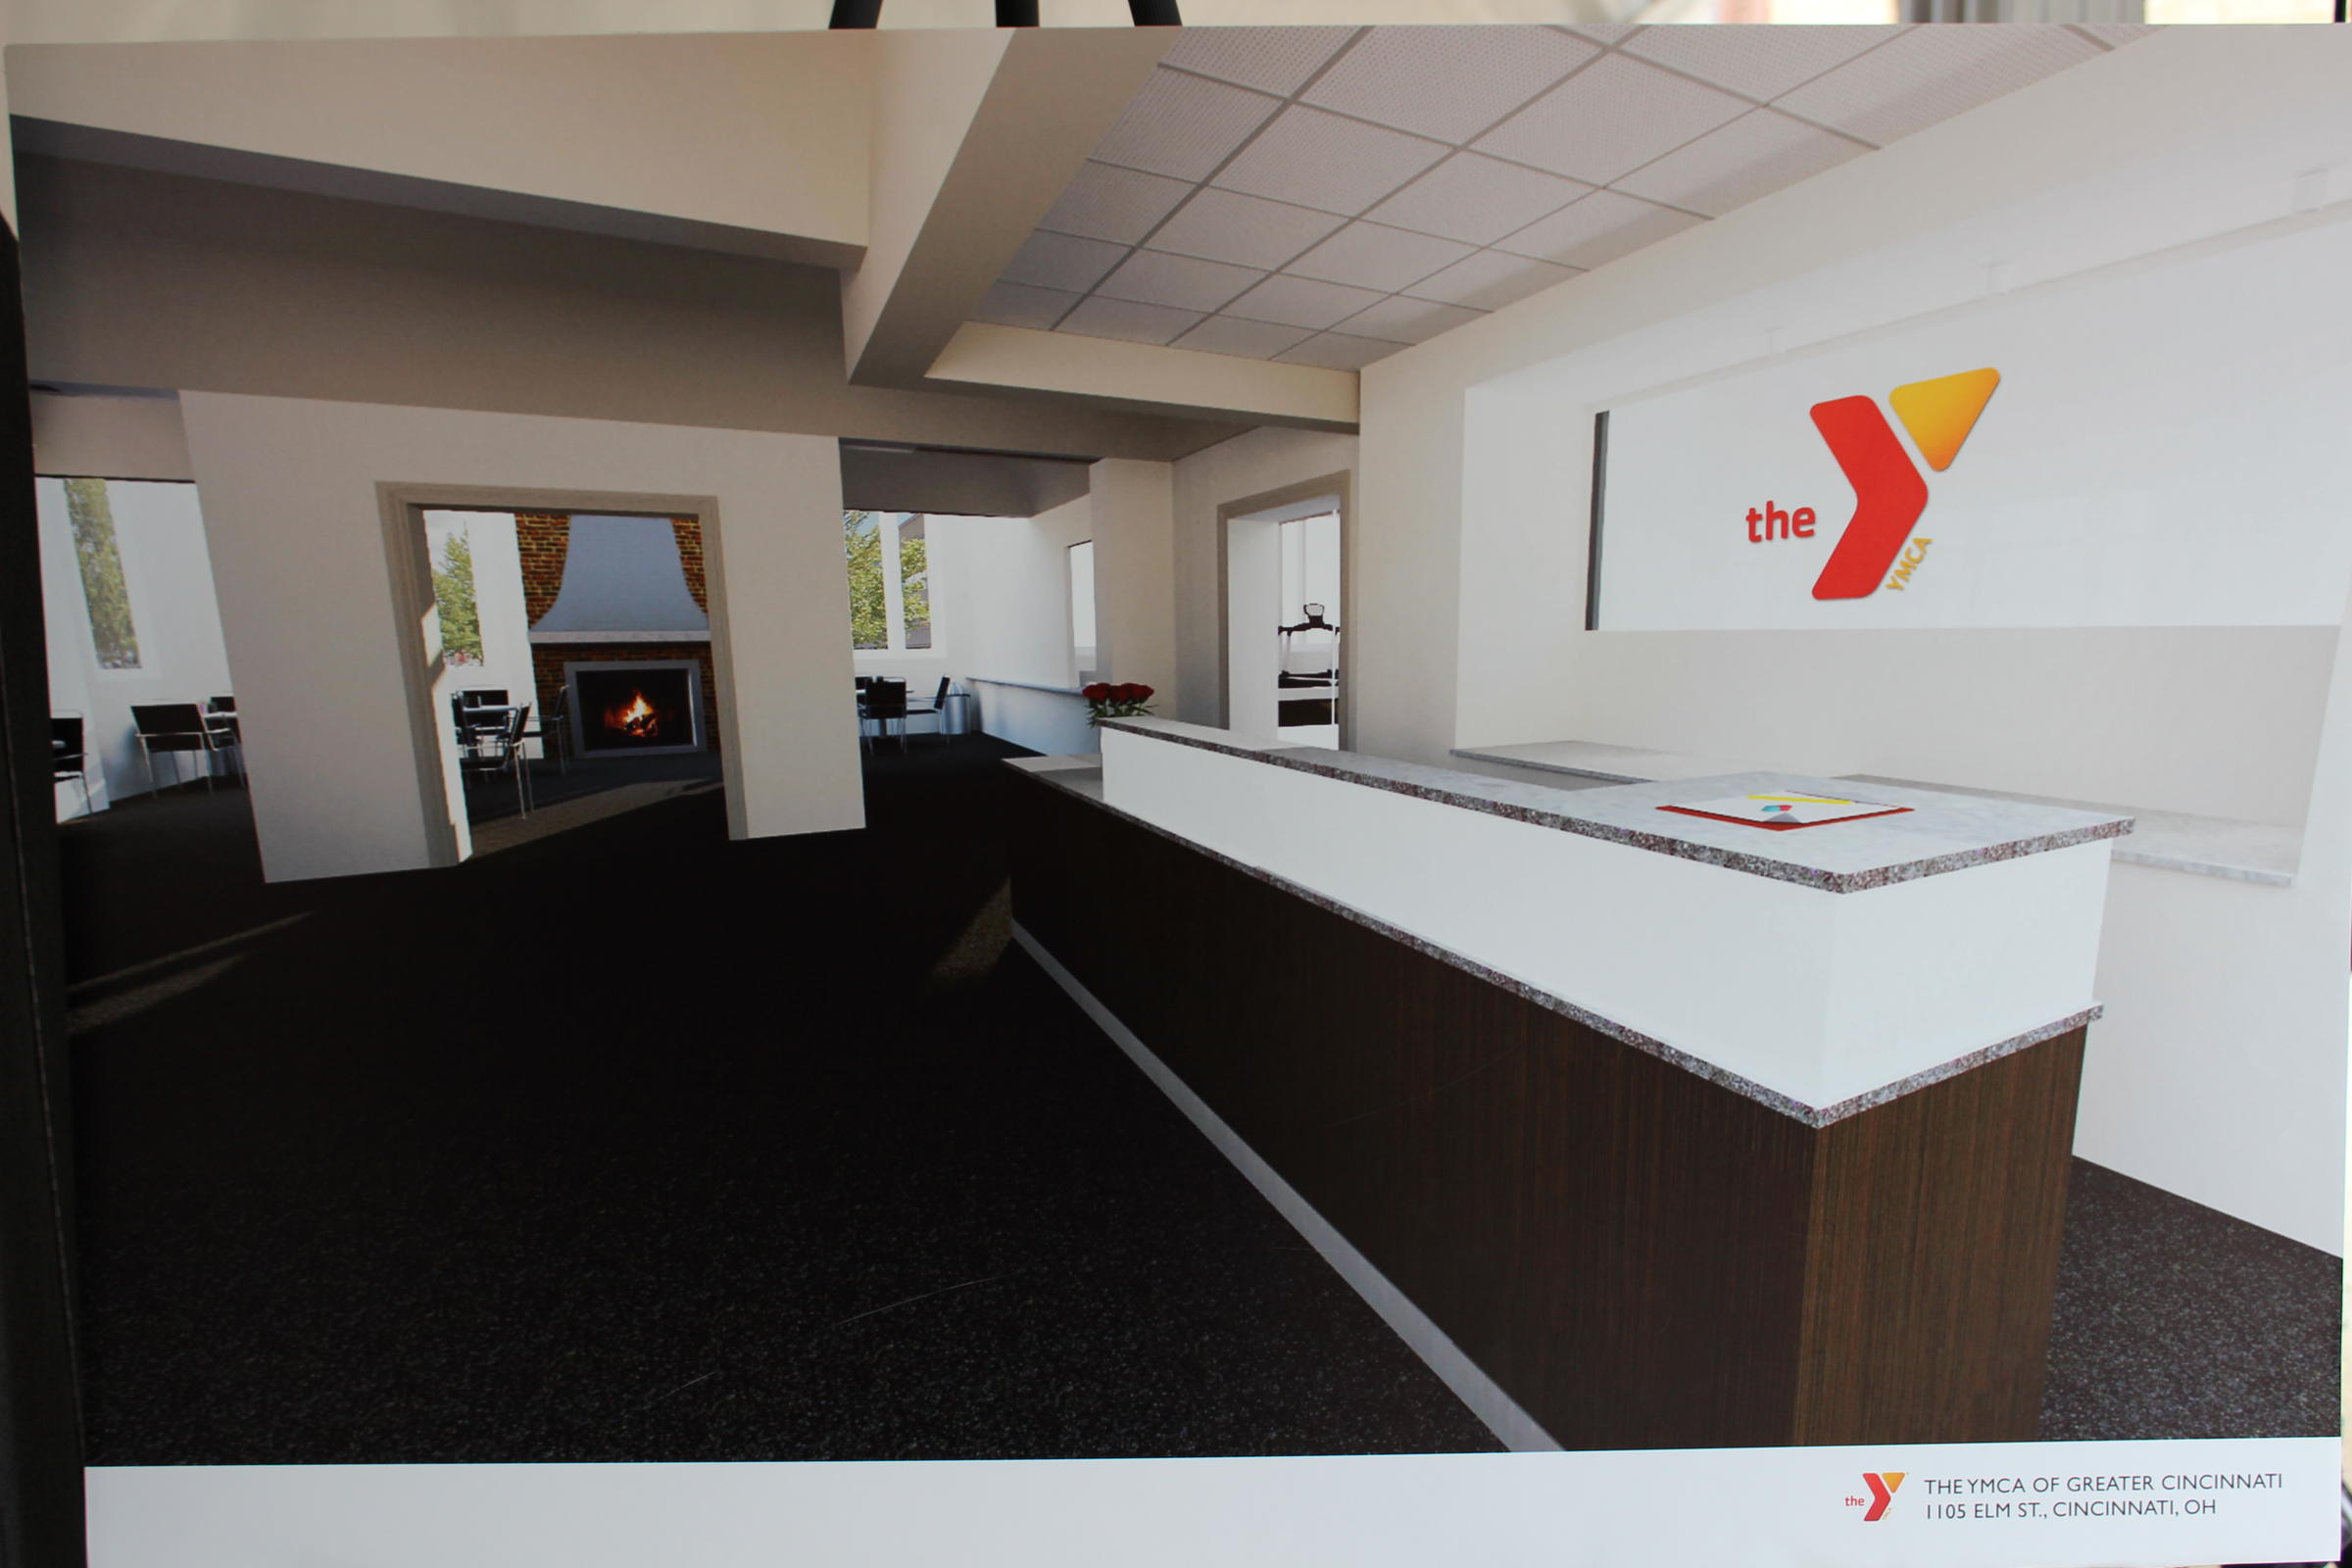 Central parkway ymca renovation plans unveiled wvxu for Renovation drawings